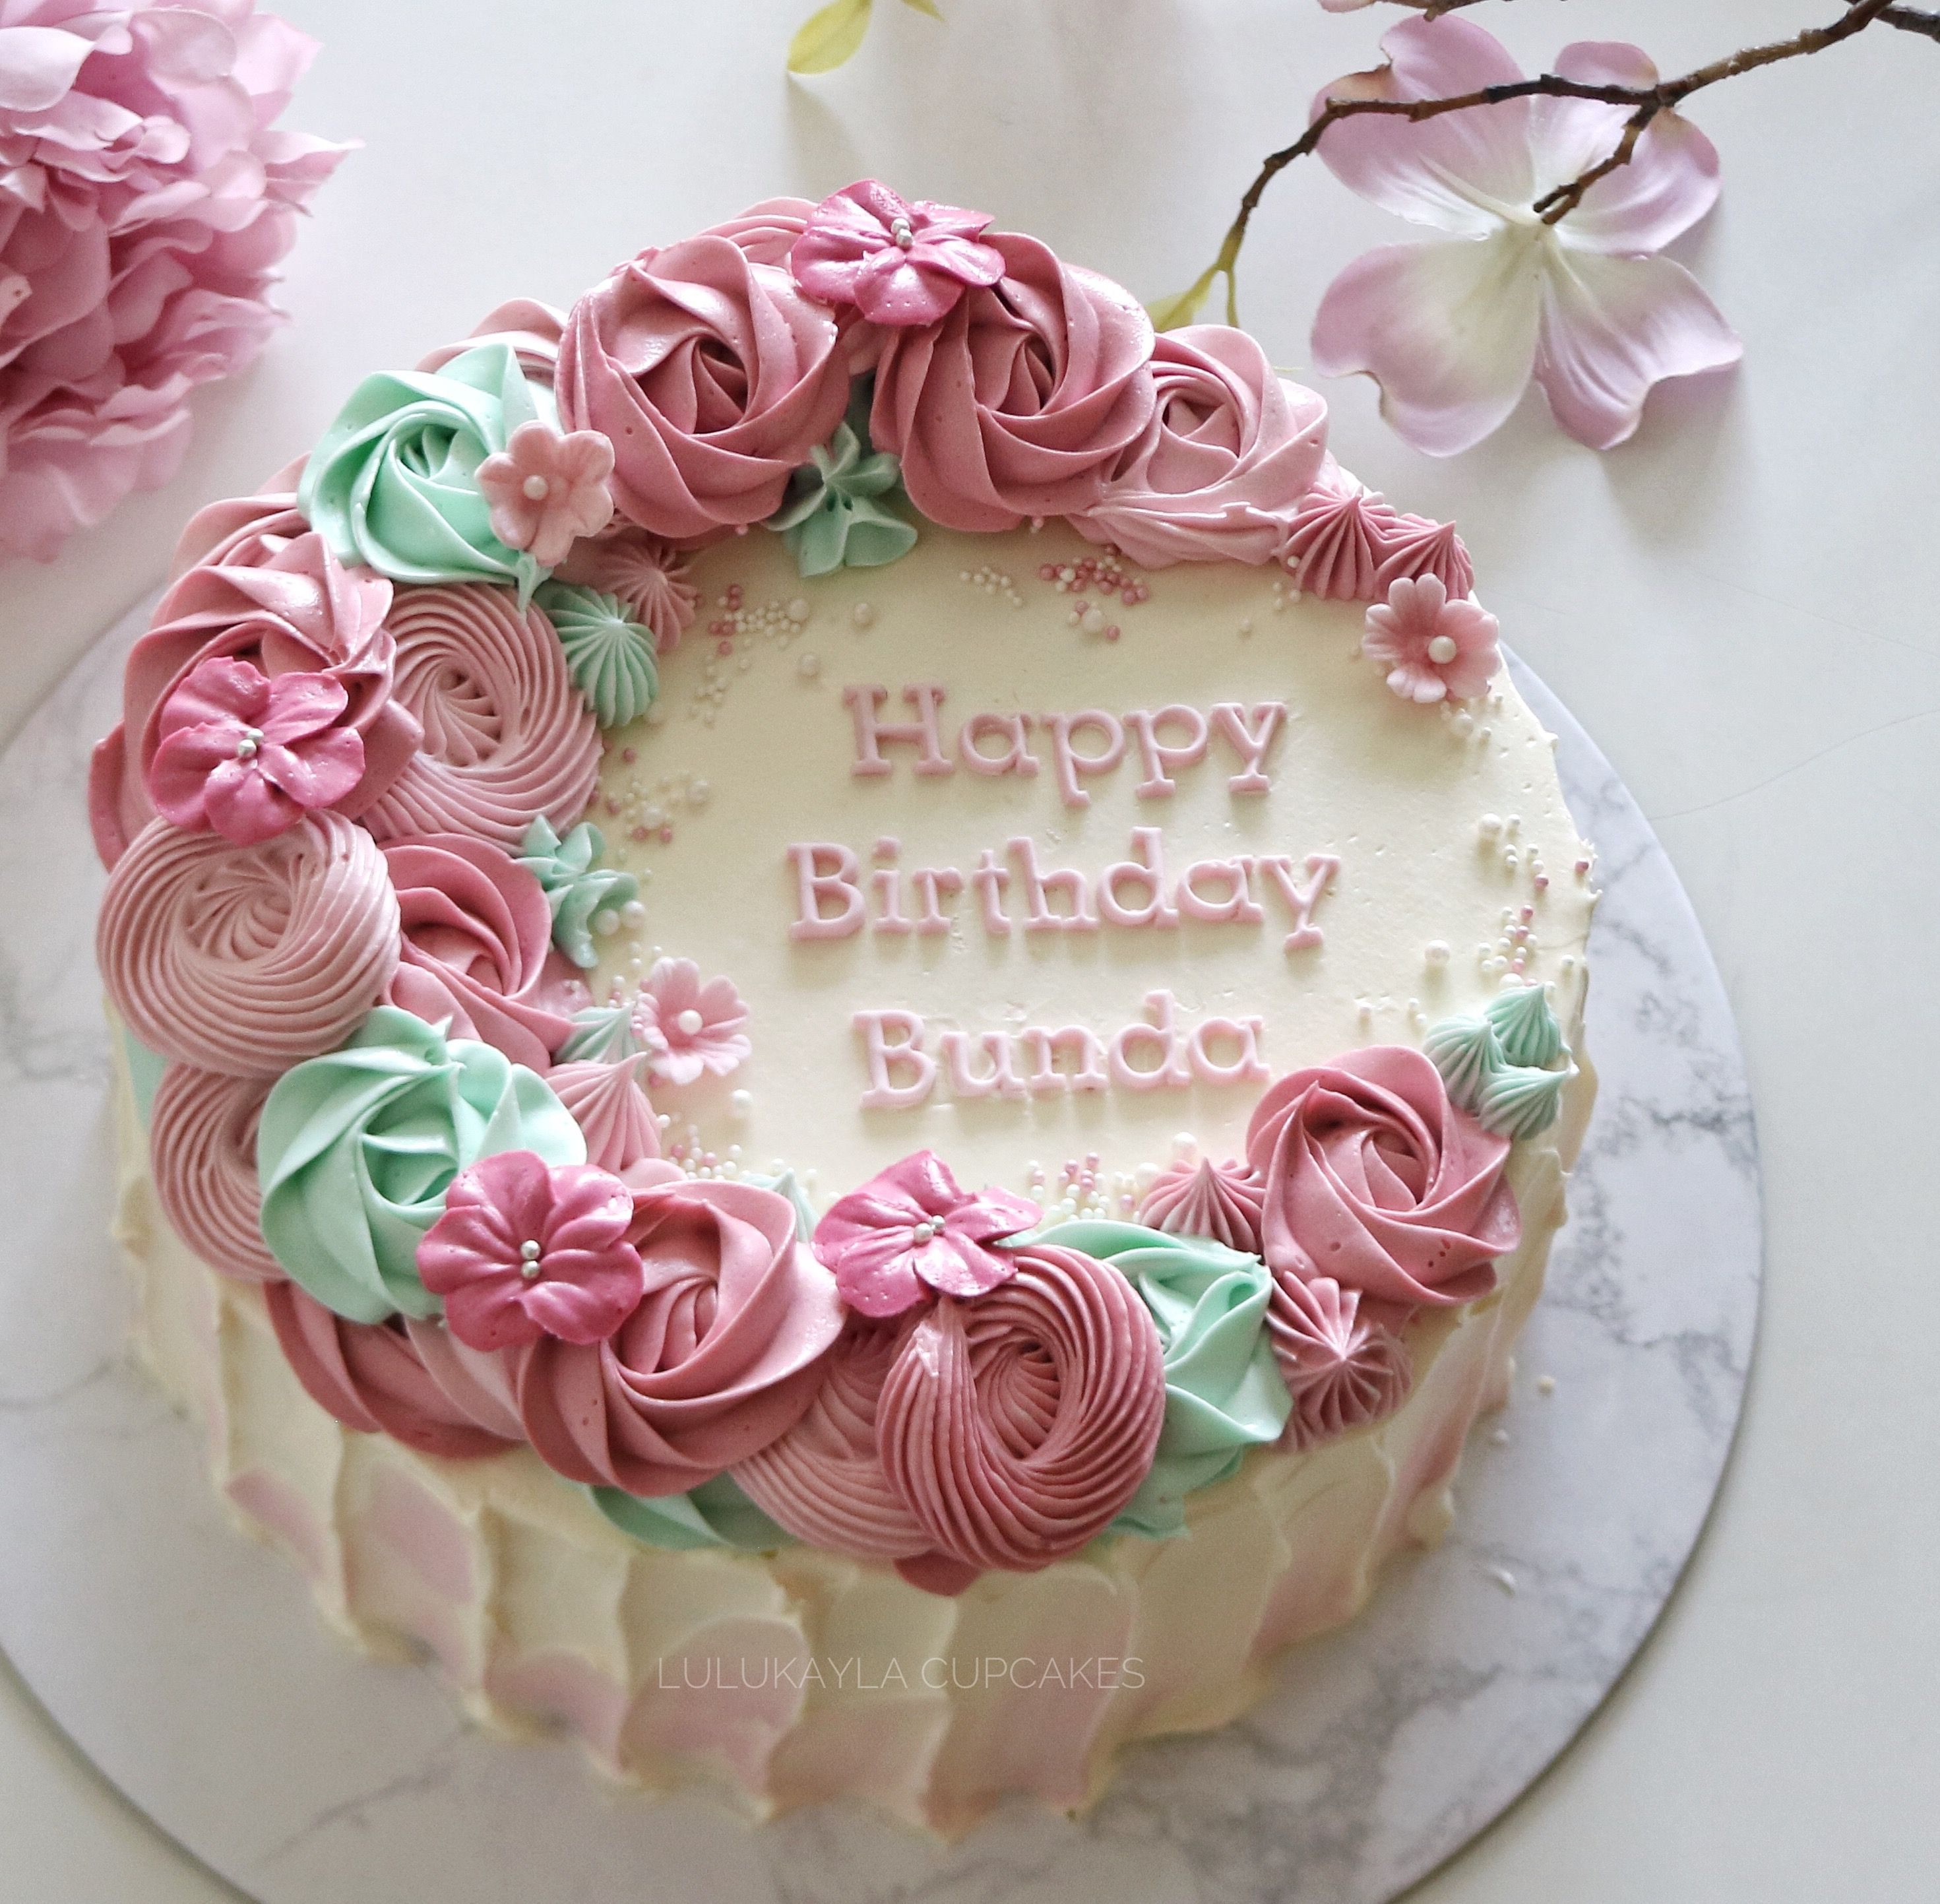 Rustic Buttercream Cake With Soft Pink And Cream Rose Flowers Elegant Birthday Cakes Small Birthday Cakes Birthday Cake With Flowers